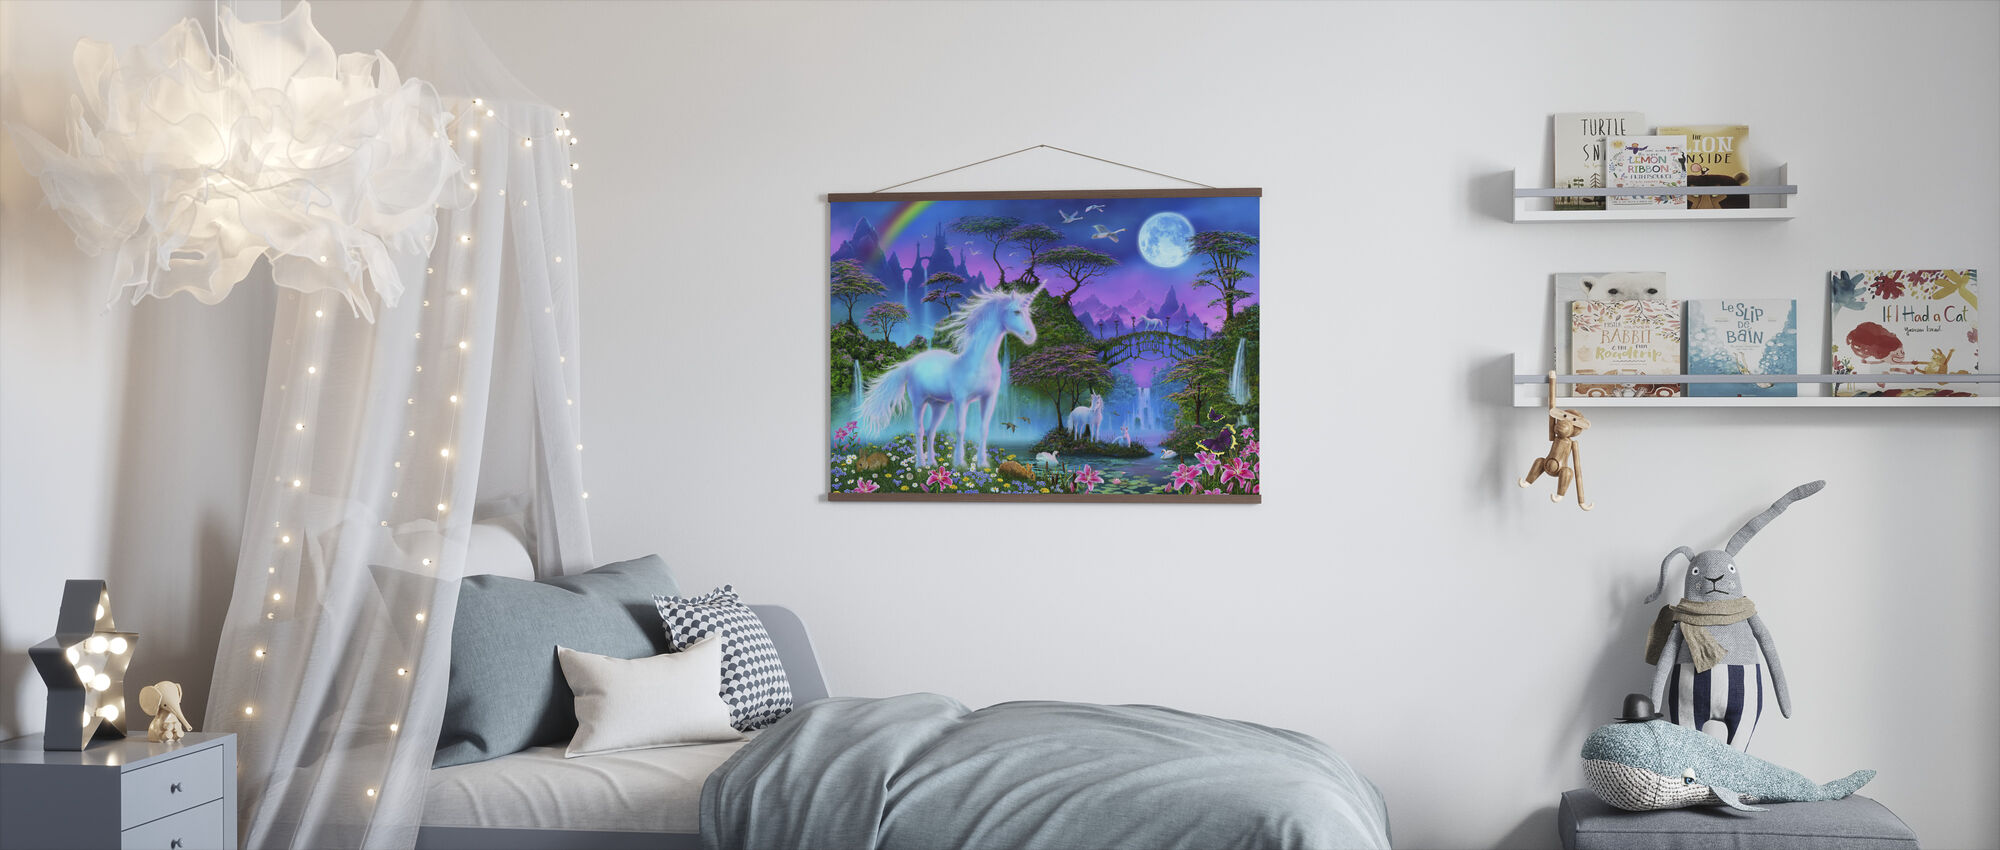 Bridge Unicorns - Poster - Kids Room